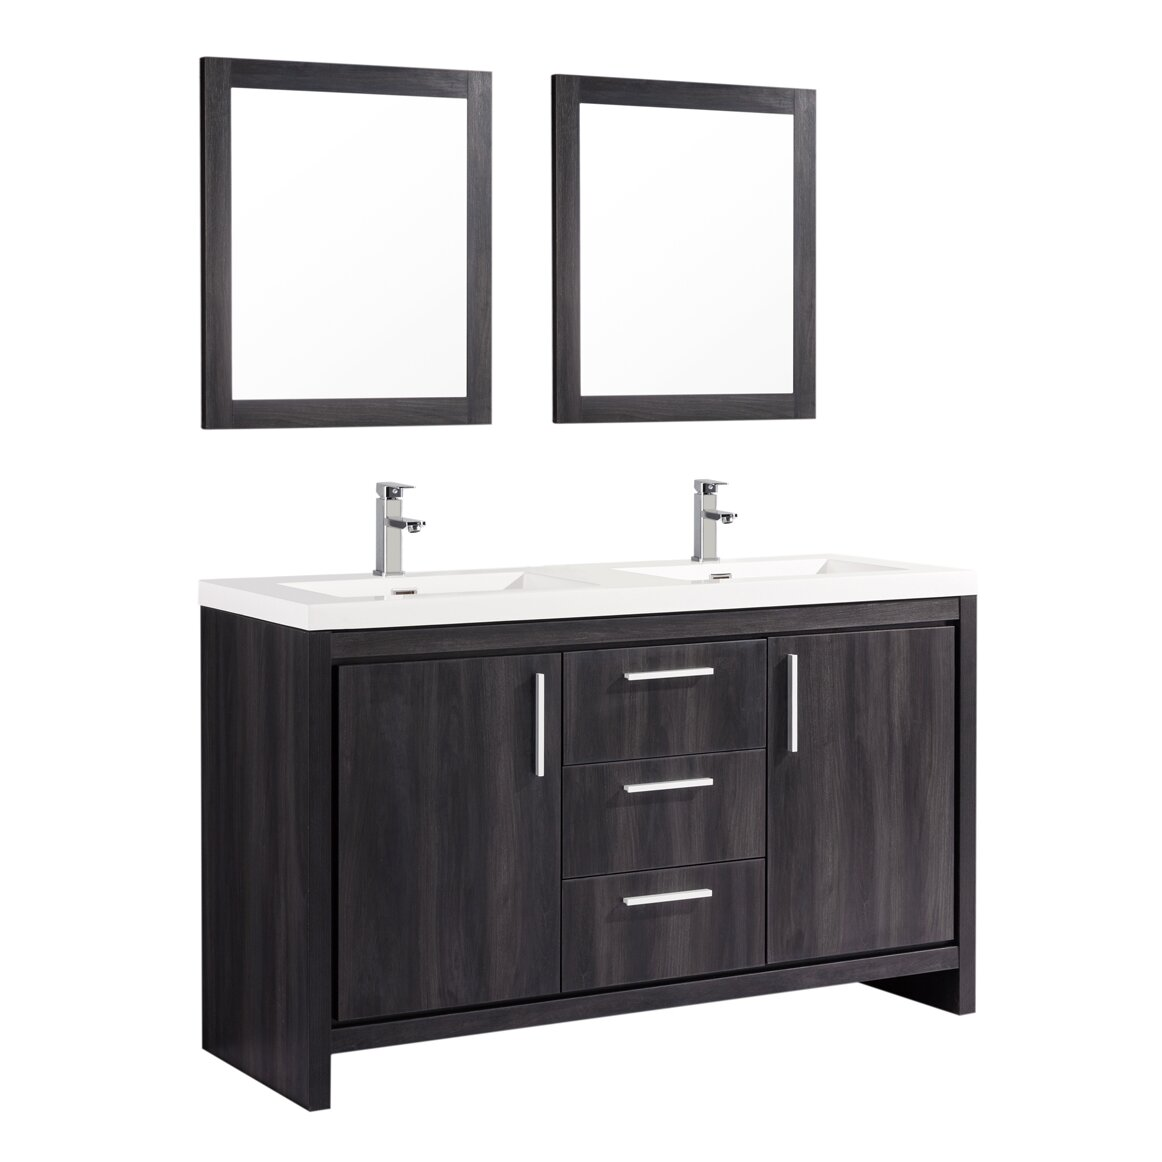 Mtdvanities miami 59 double sink modern bathroom vanity - Contemporary double sink bathroom vanity ...